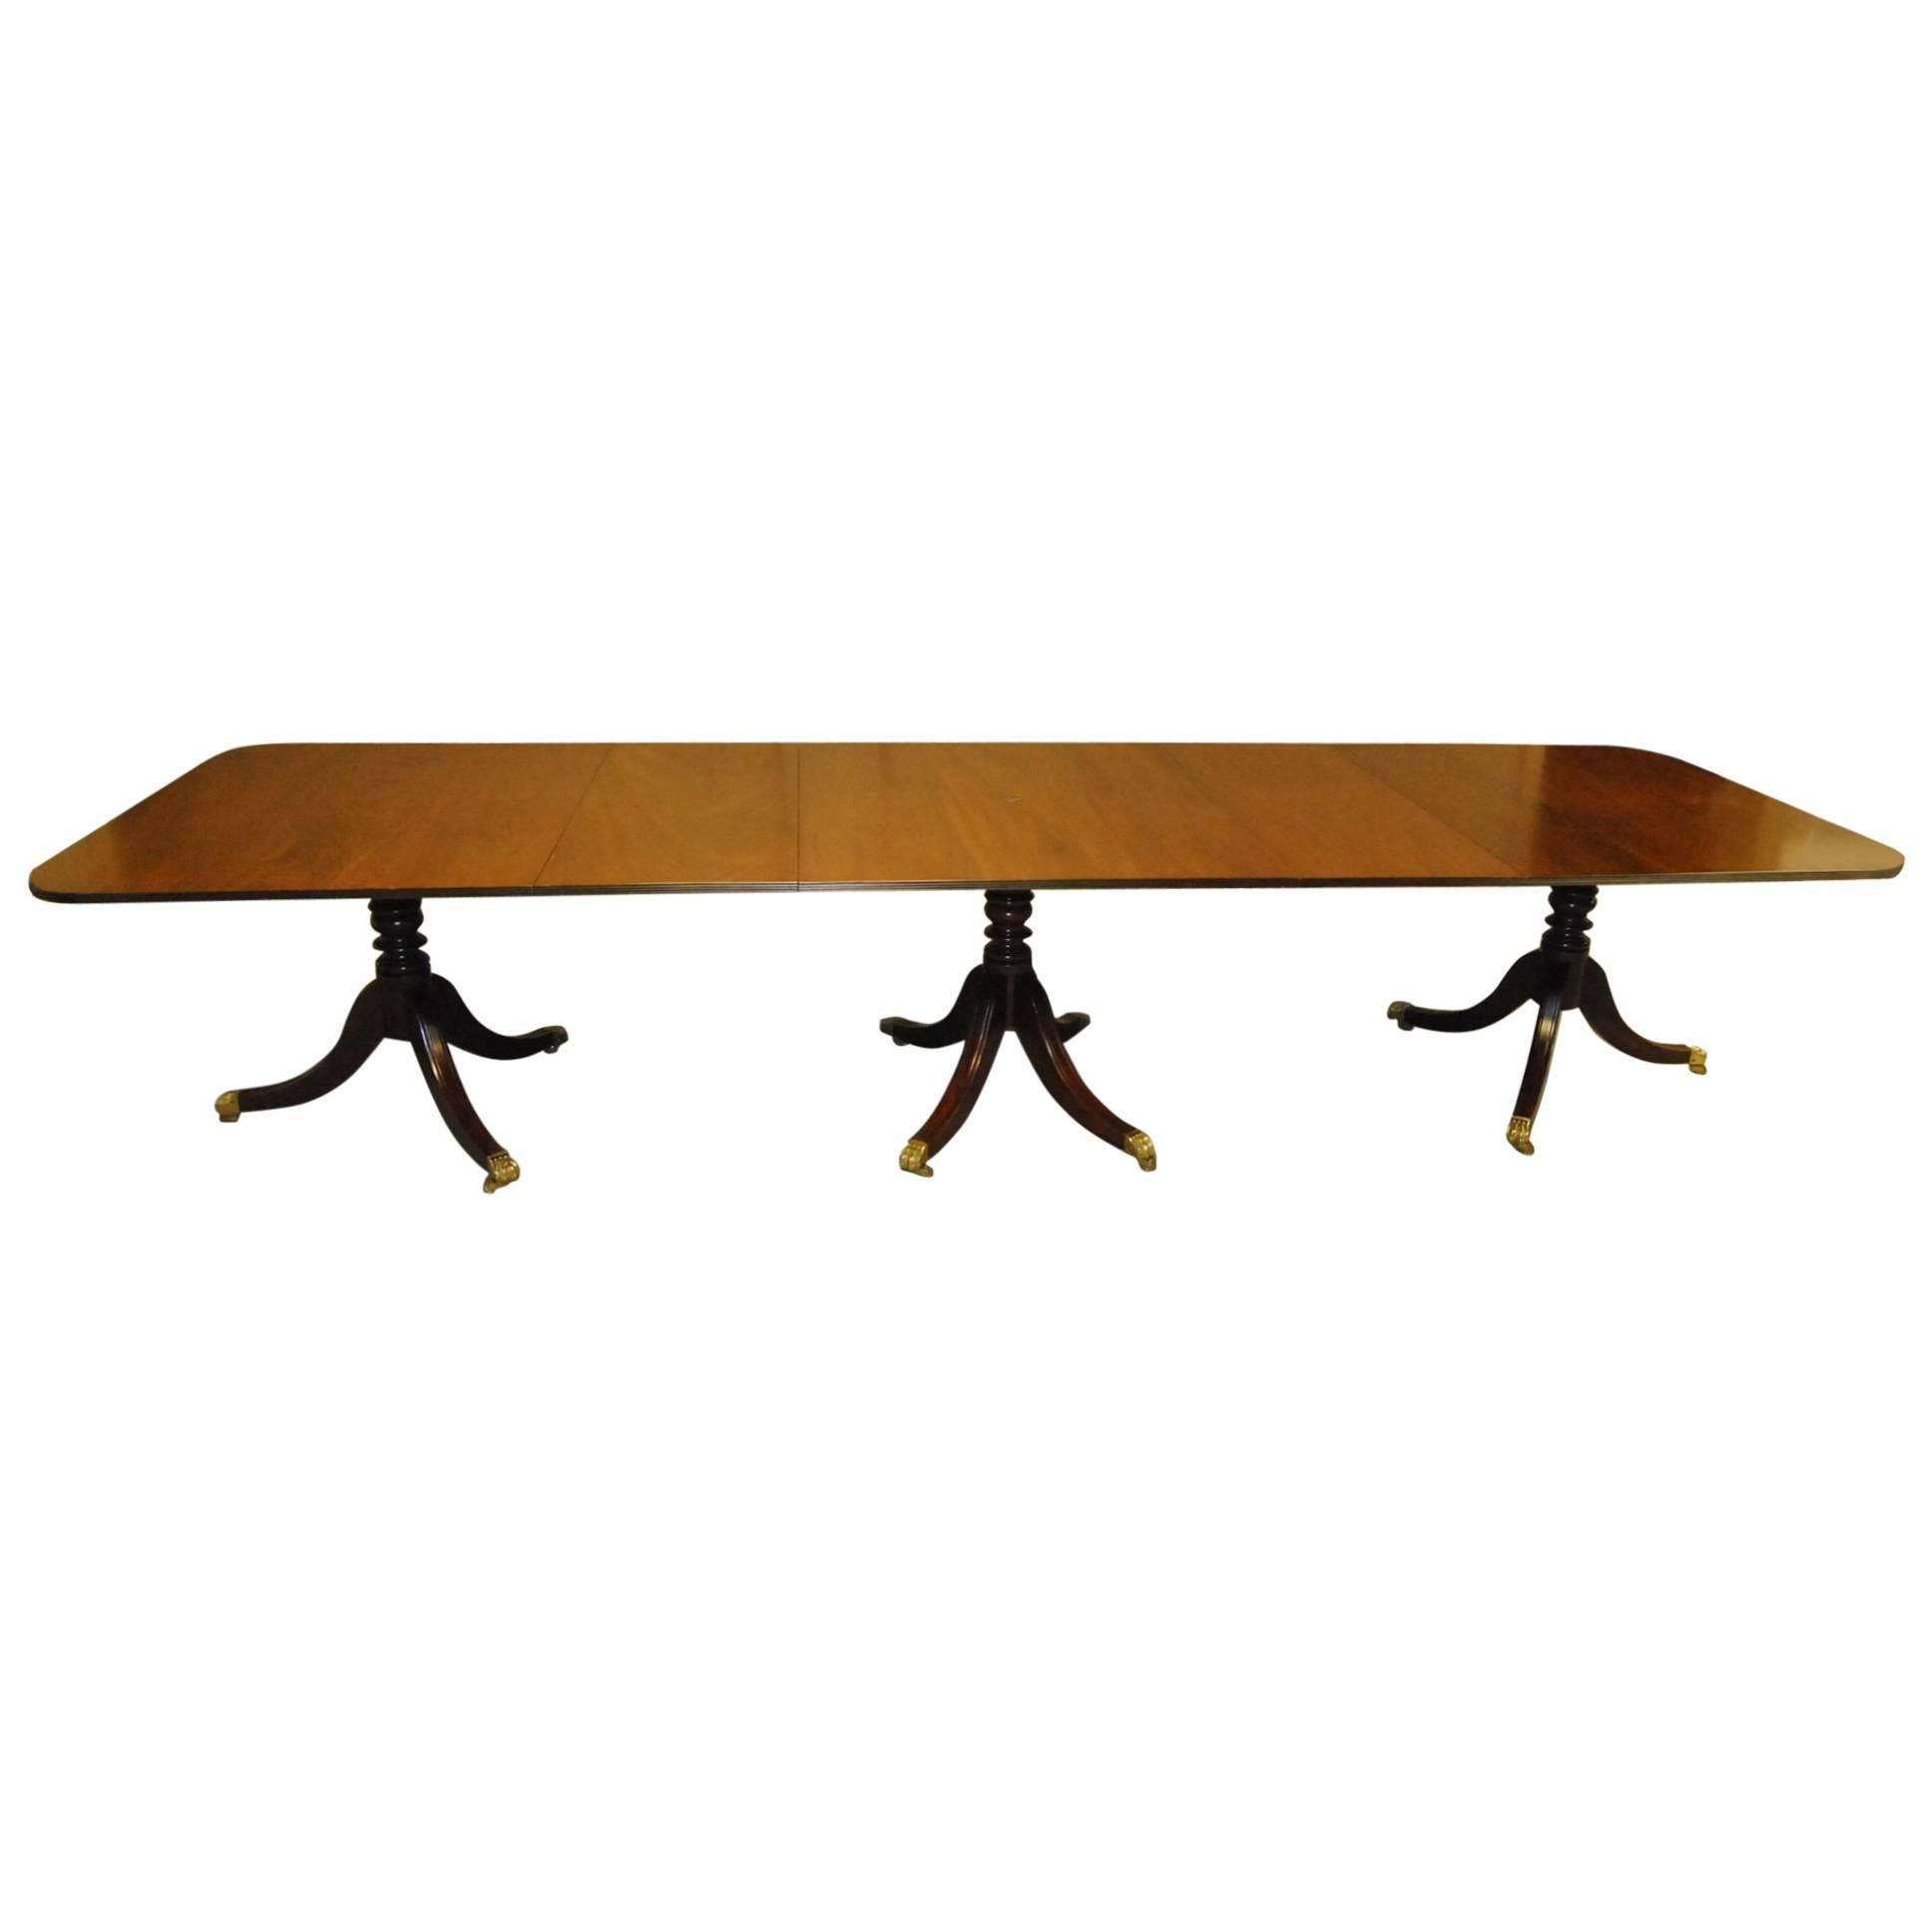 18th Century Style Mahogany Conference Table by Kittinger - 12 feet